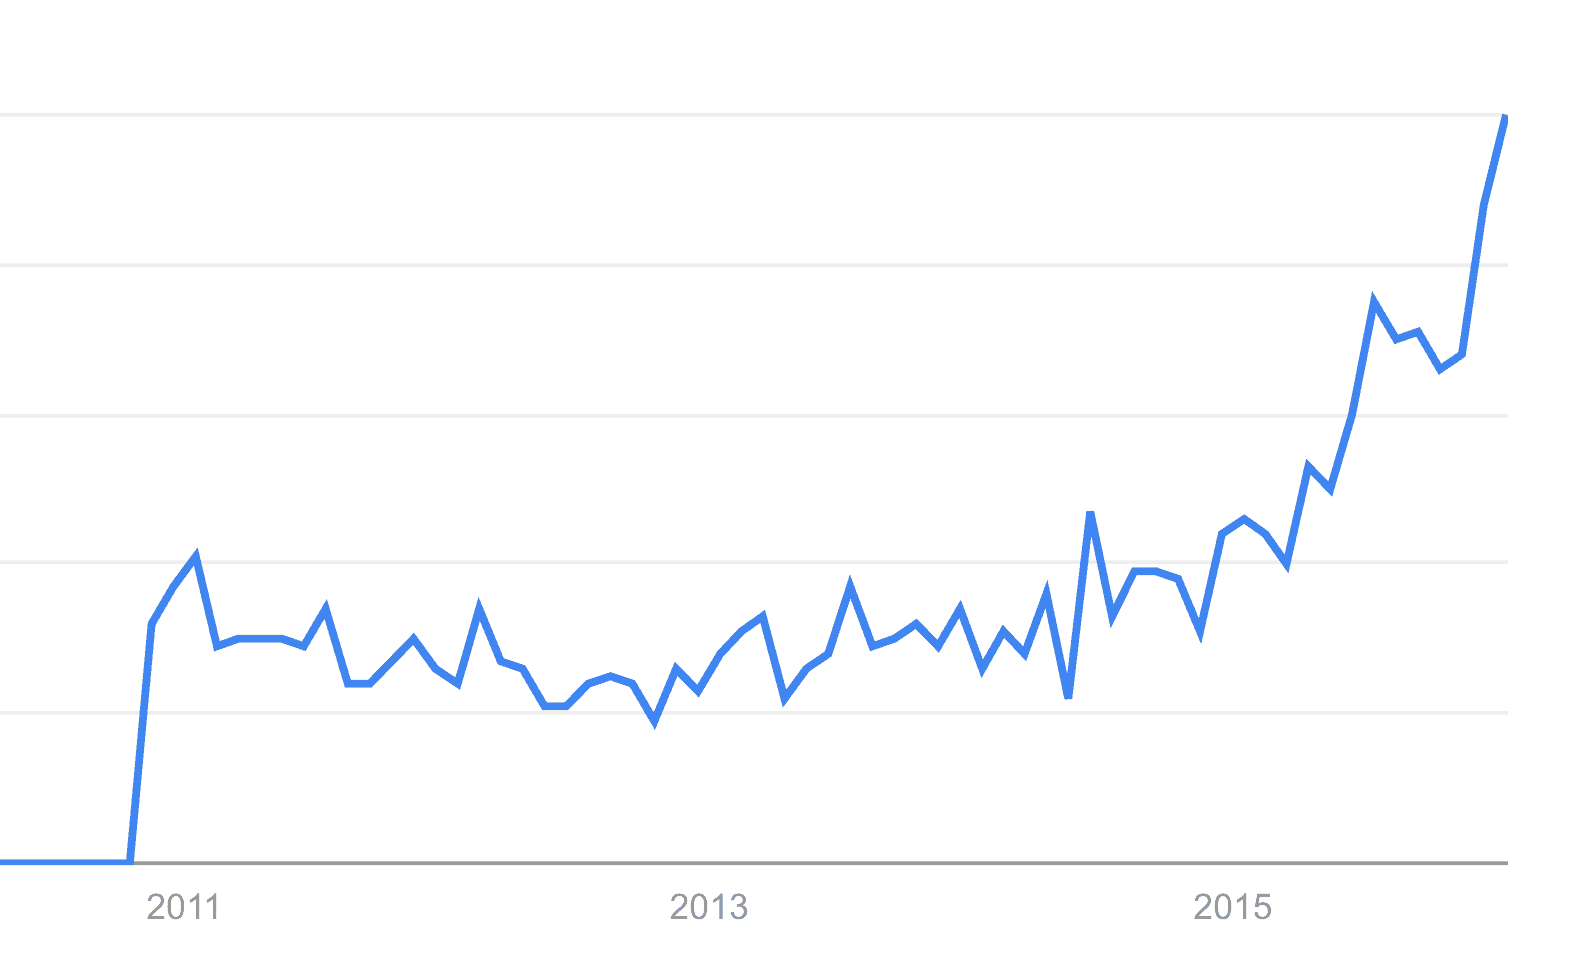 linux alpine on google trends